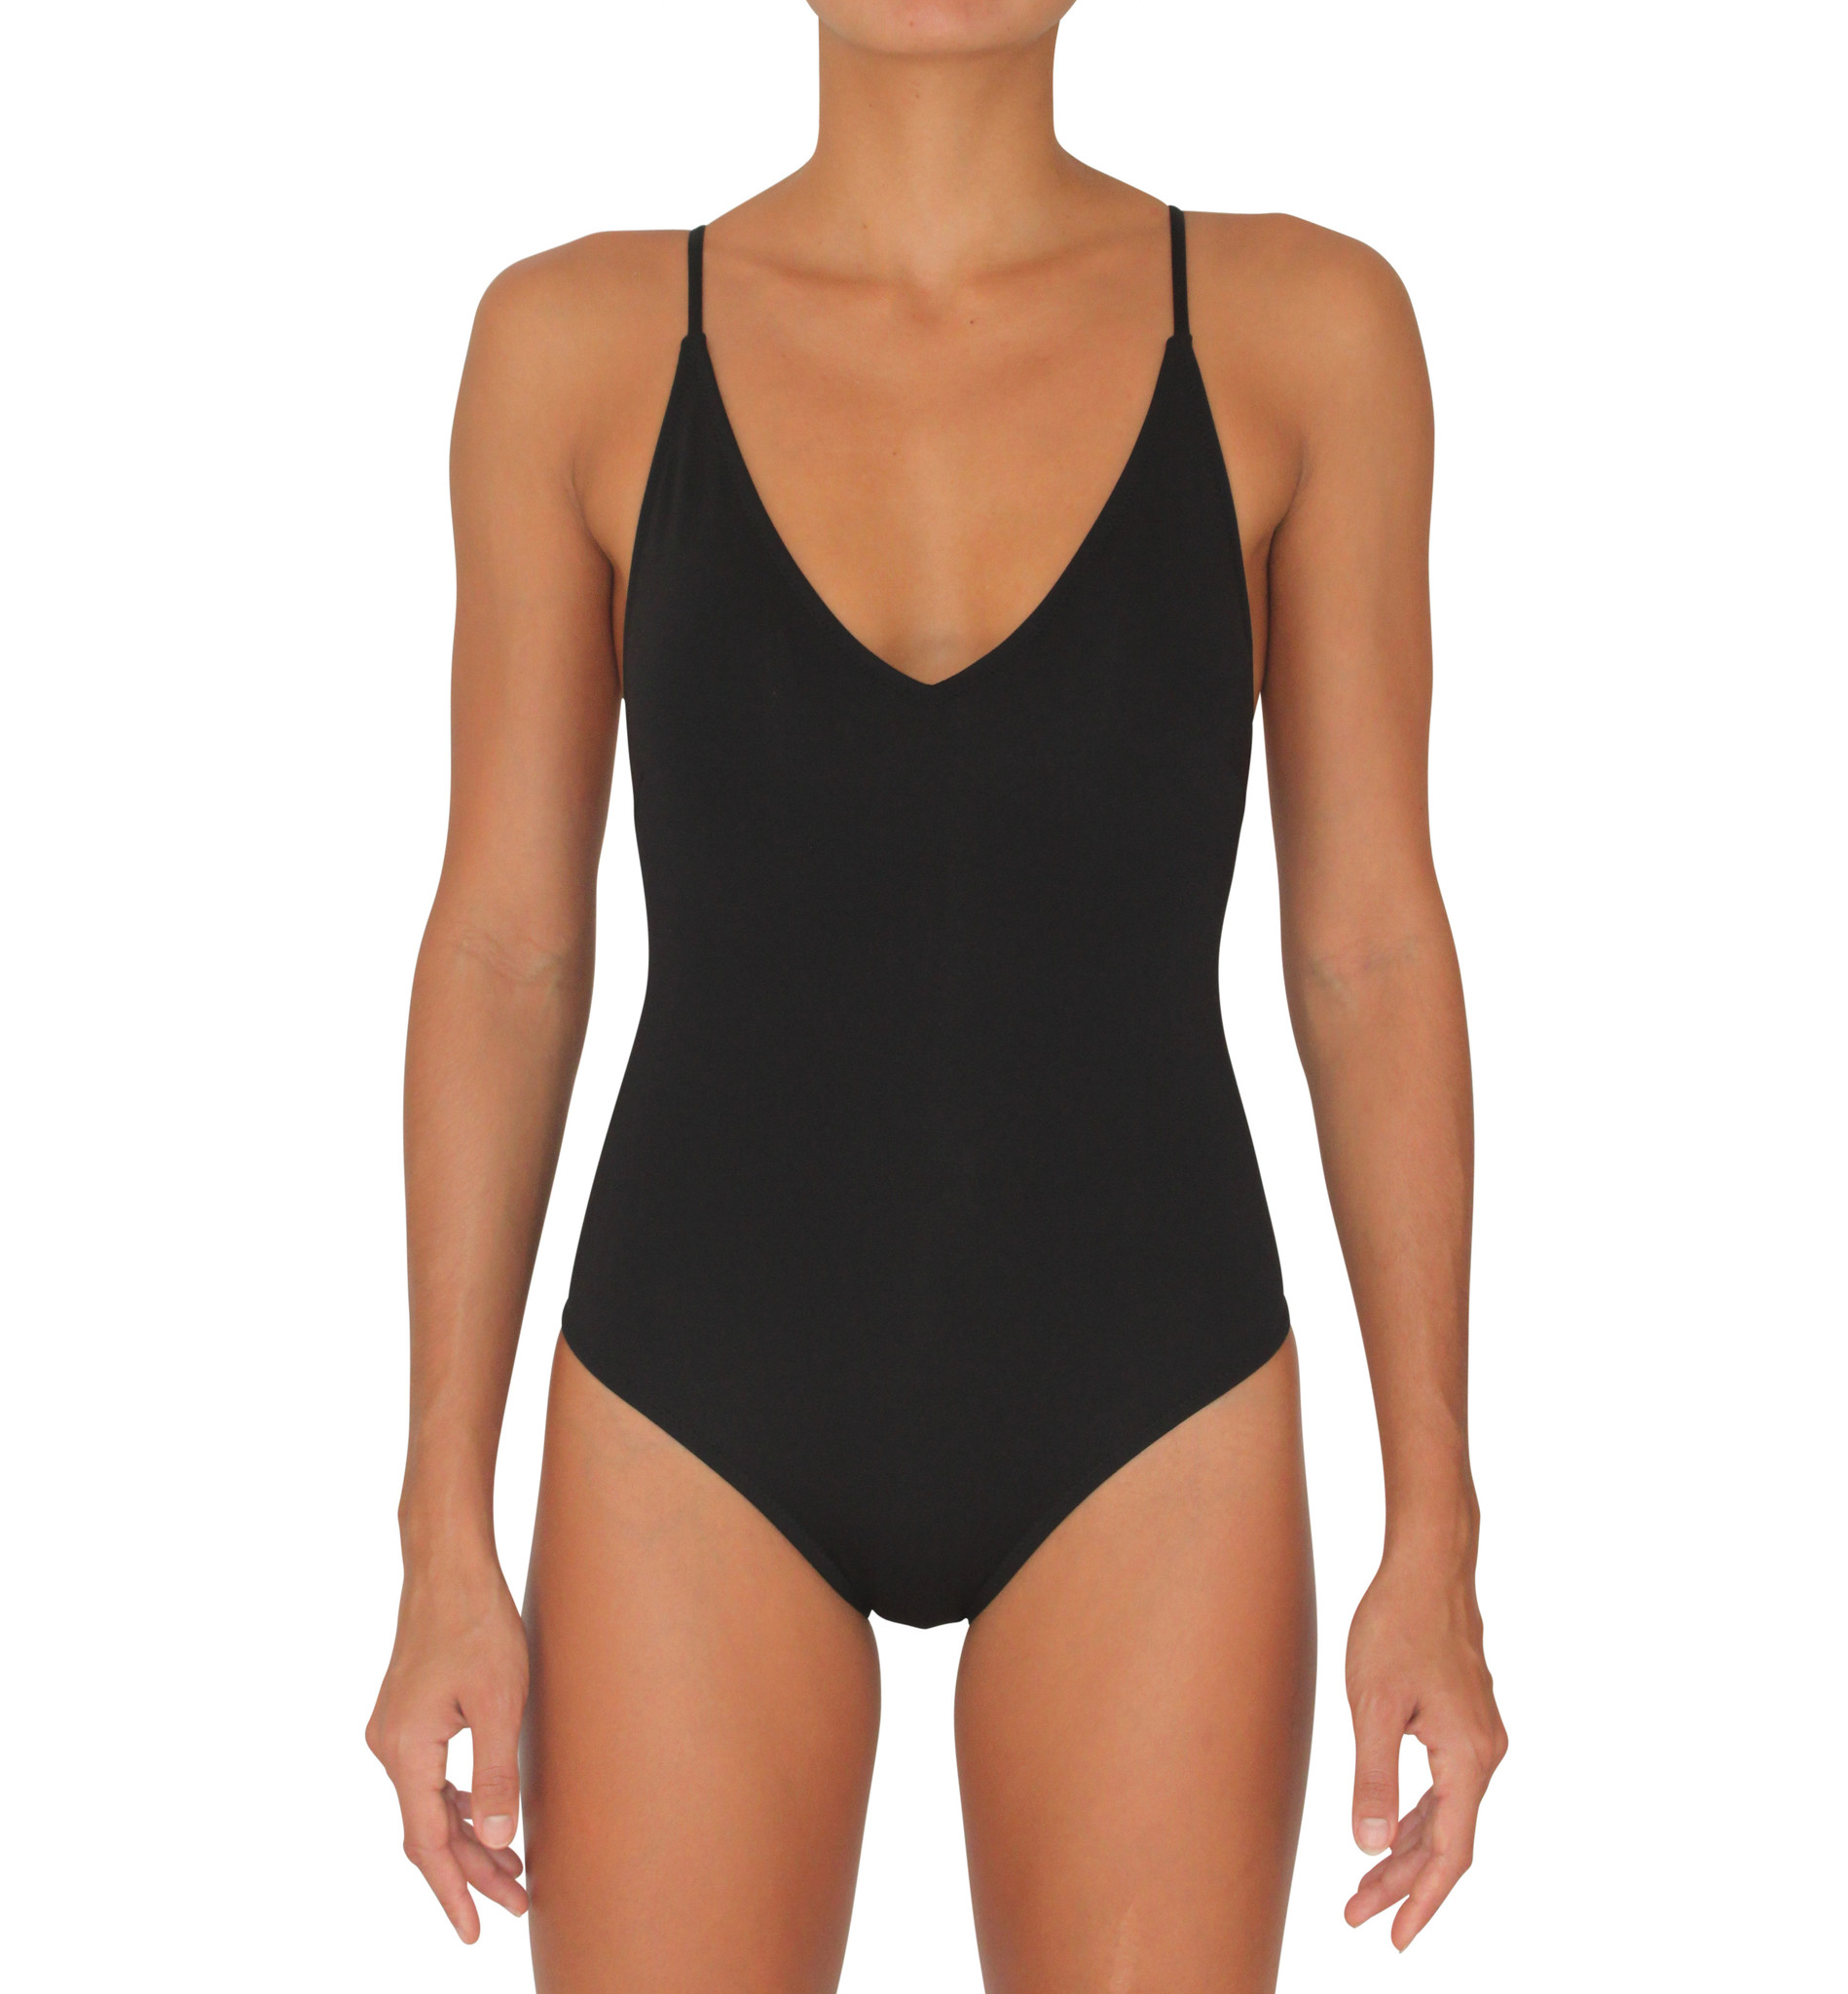 Full Bottom One Piece Black Solid